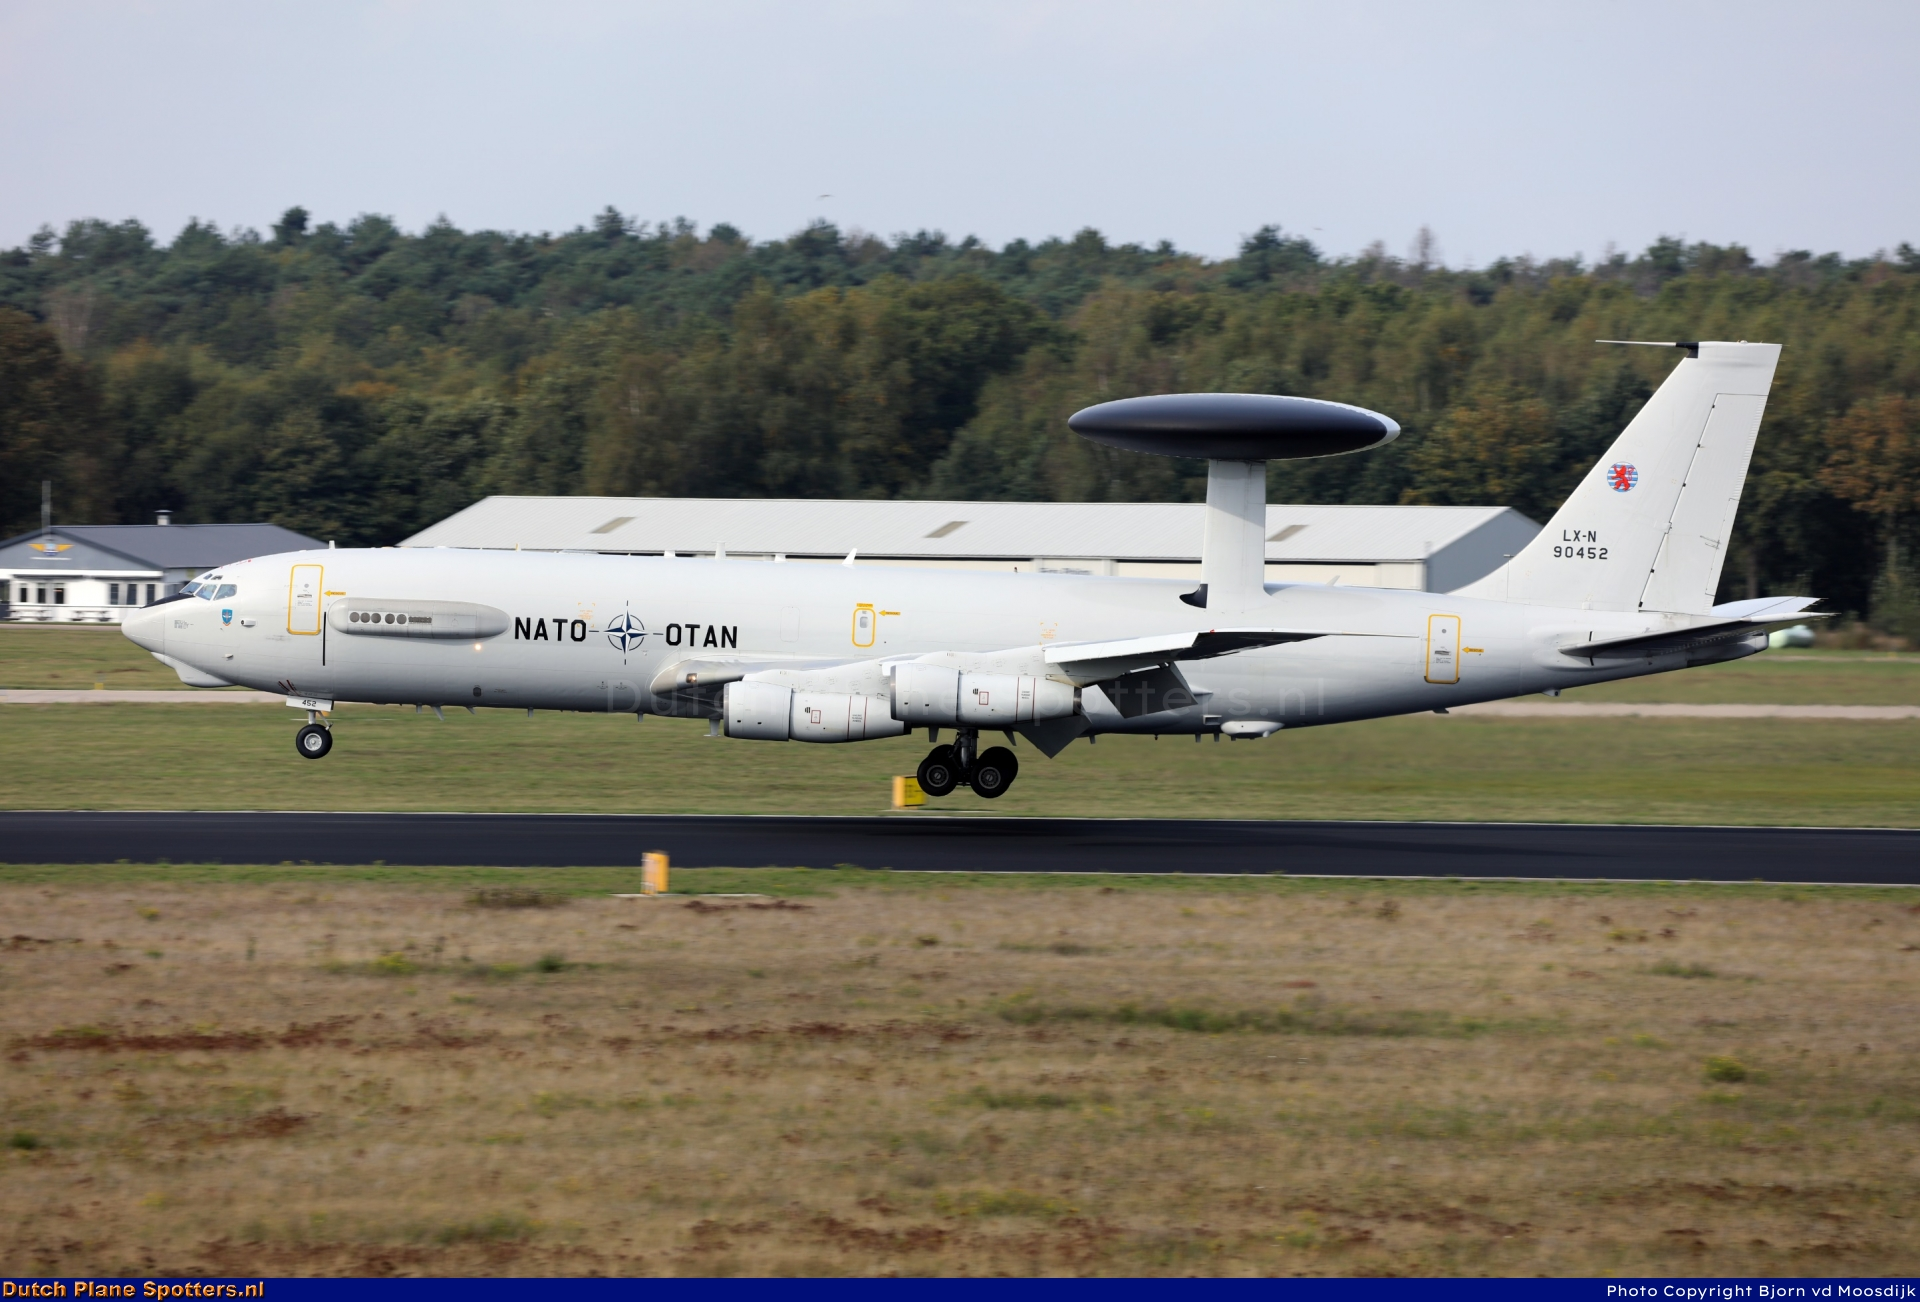 LX-N90452 Boeing E-3 Sentry MIL - NATO Airborne Early Warning Force by Bjorn vd Moosdijk